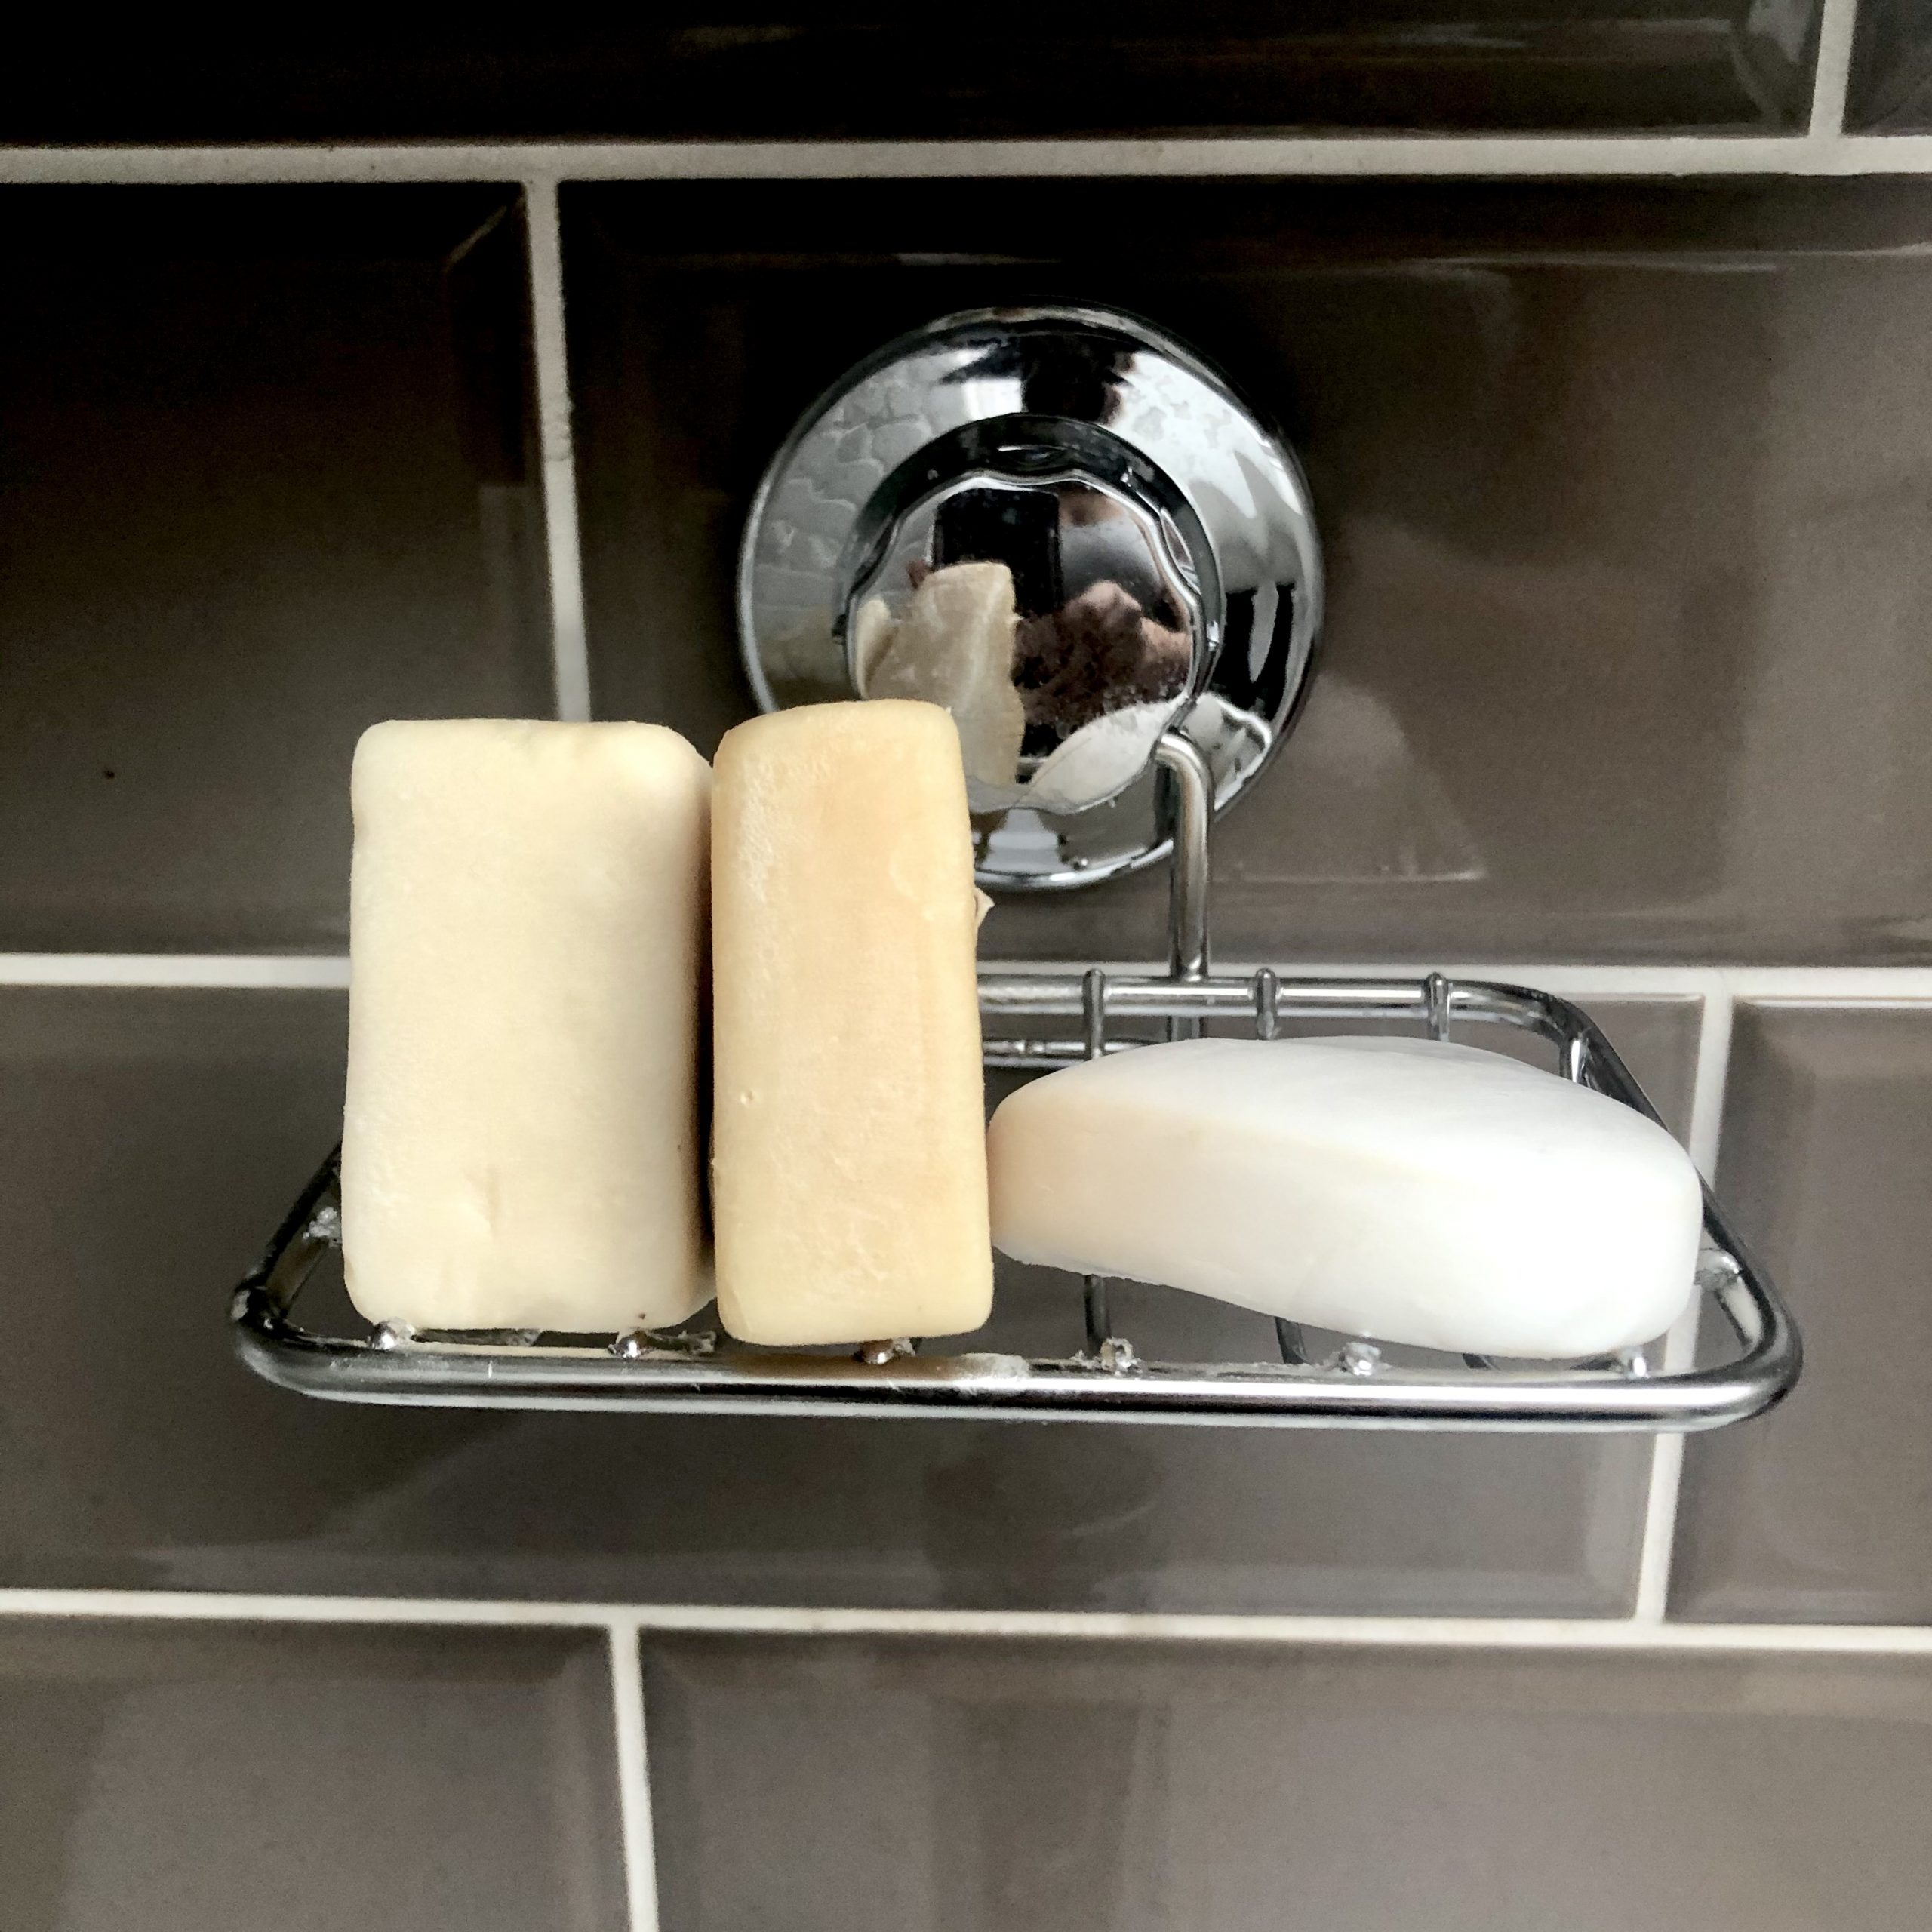 Soap holder with soap three bars of soap